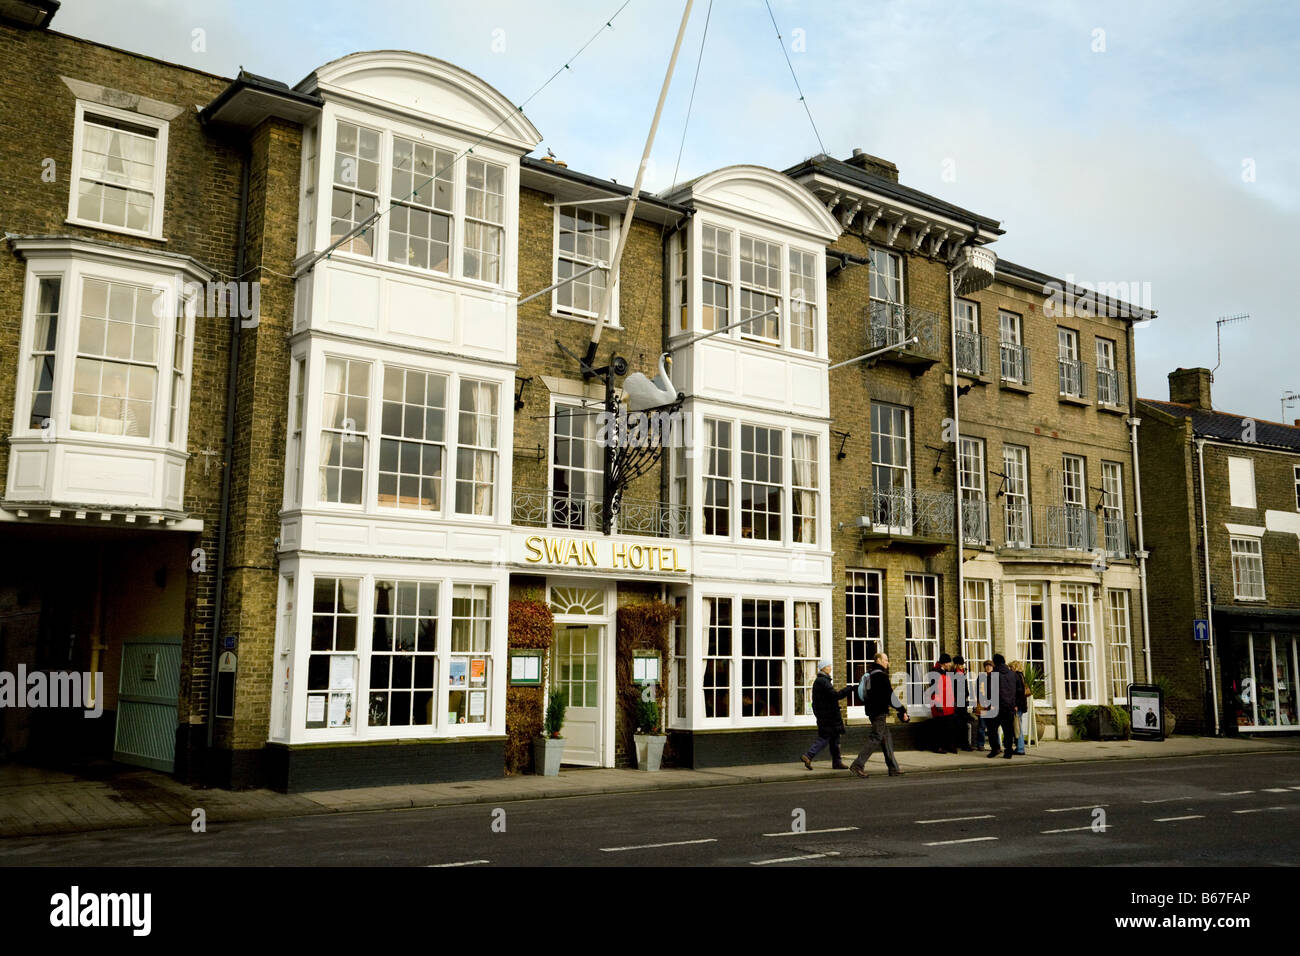 The Swan Hotel, Southwold, Suffolk, England - Stock Image